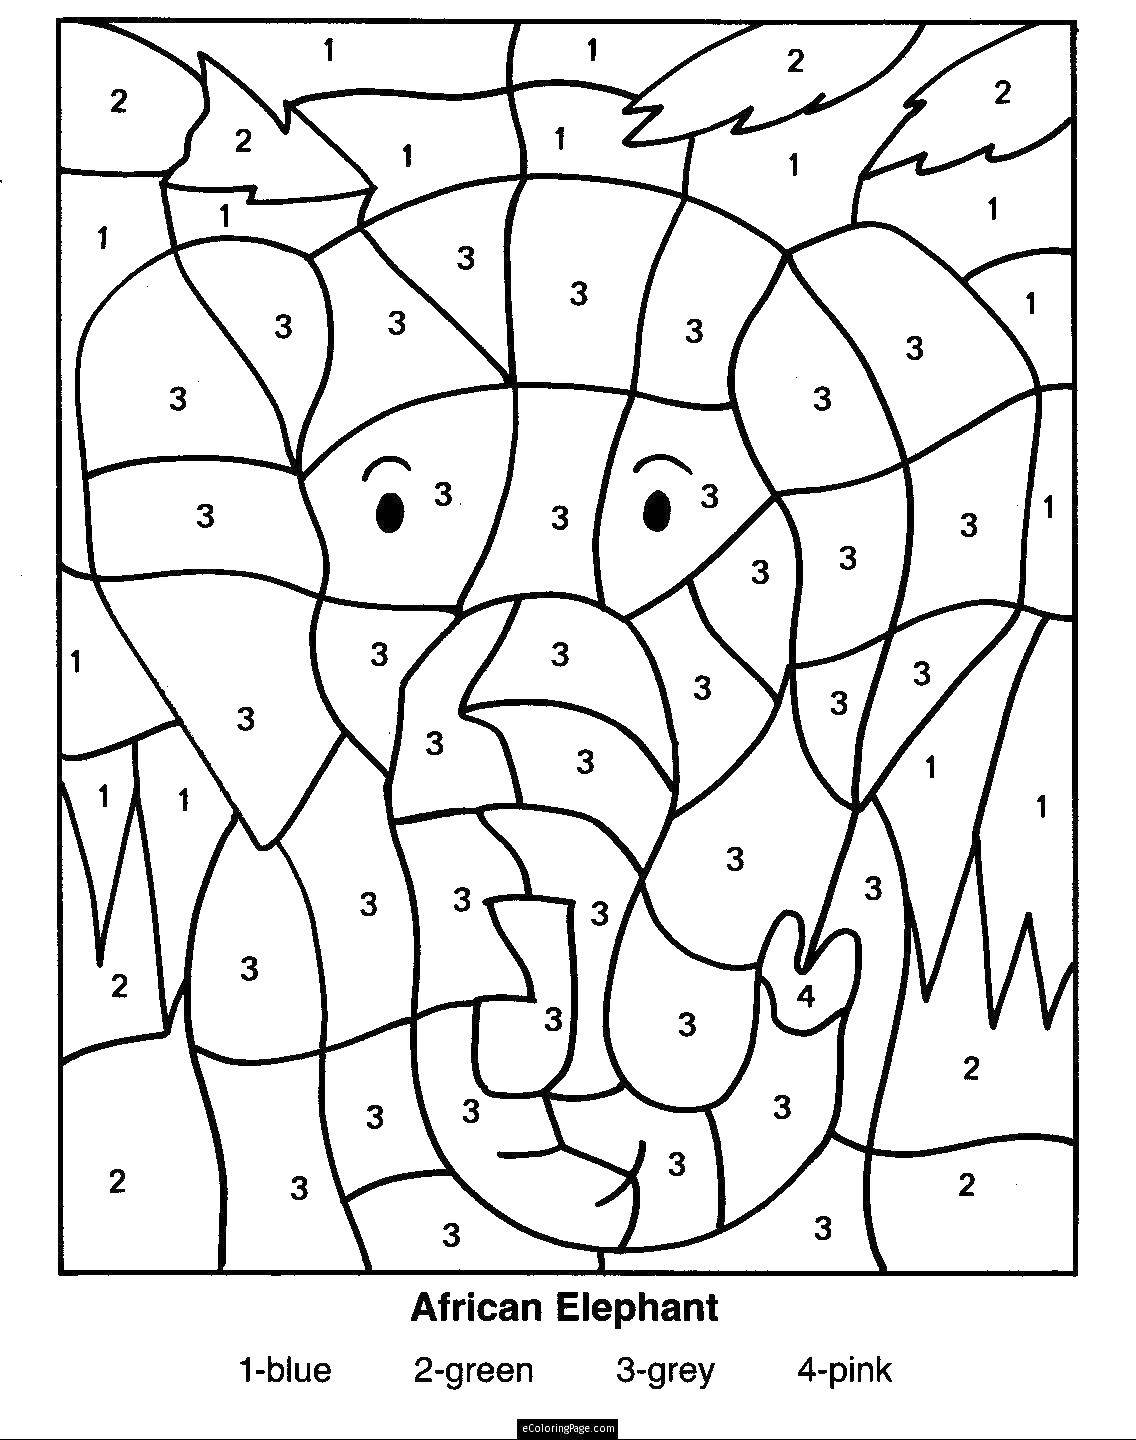 Coloring sheet By the numbers Download .  Print